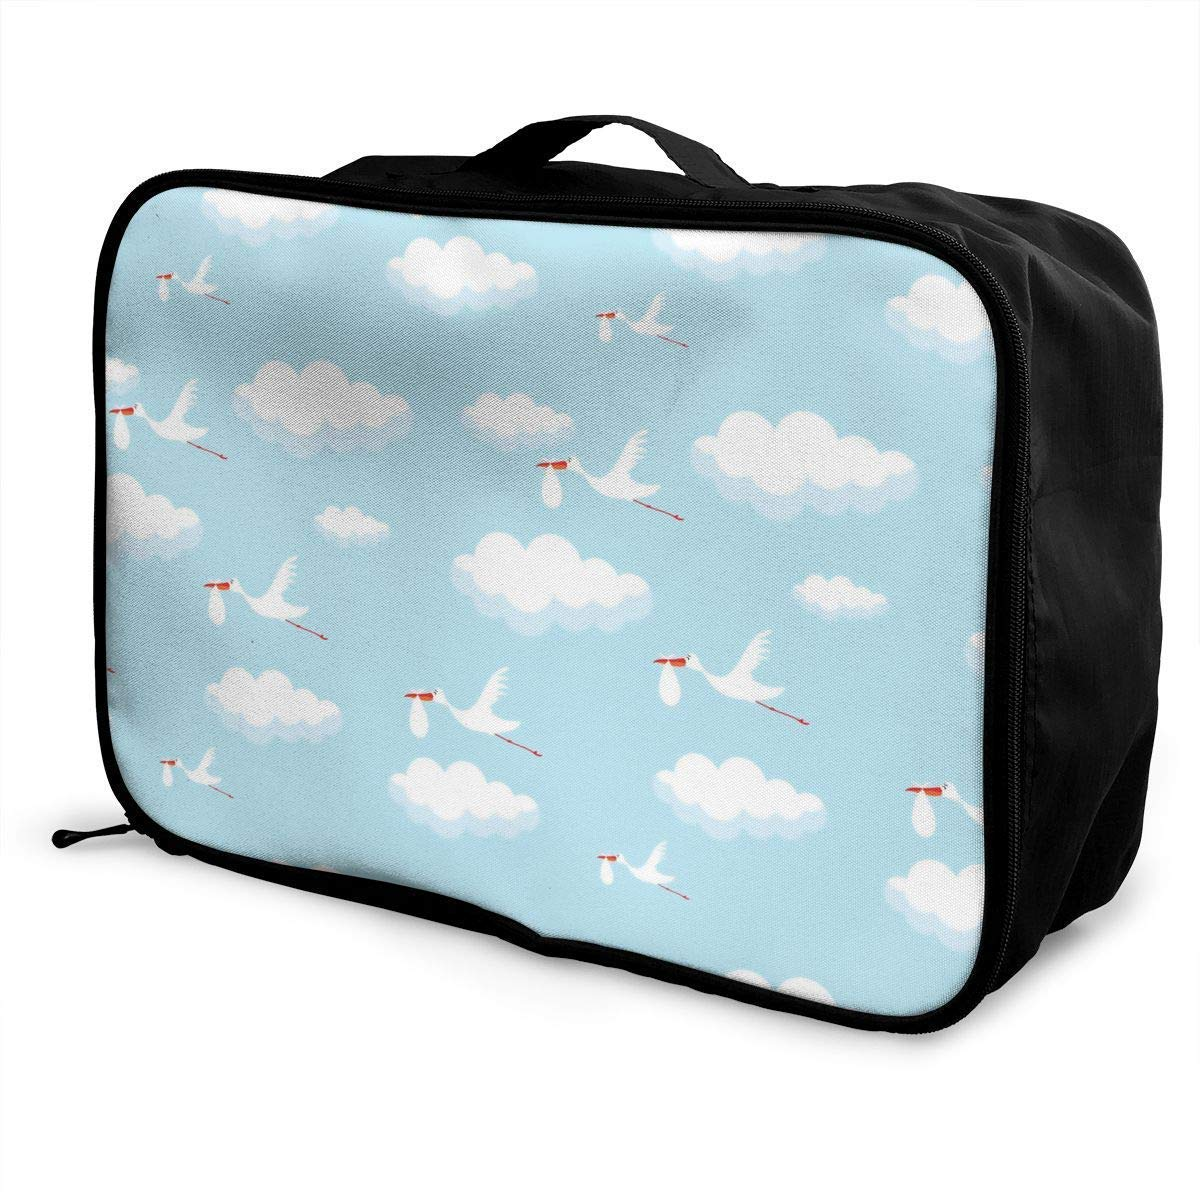 JTRVW Luggage Bags for Travel Portable Luggage Duffel Bag Funny Storks Travel Bags Carry-on in Trolley Handle